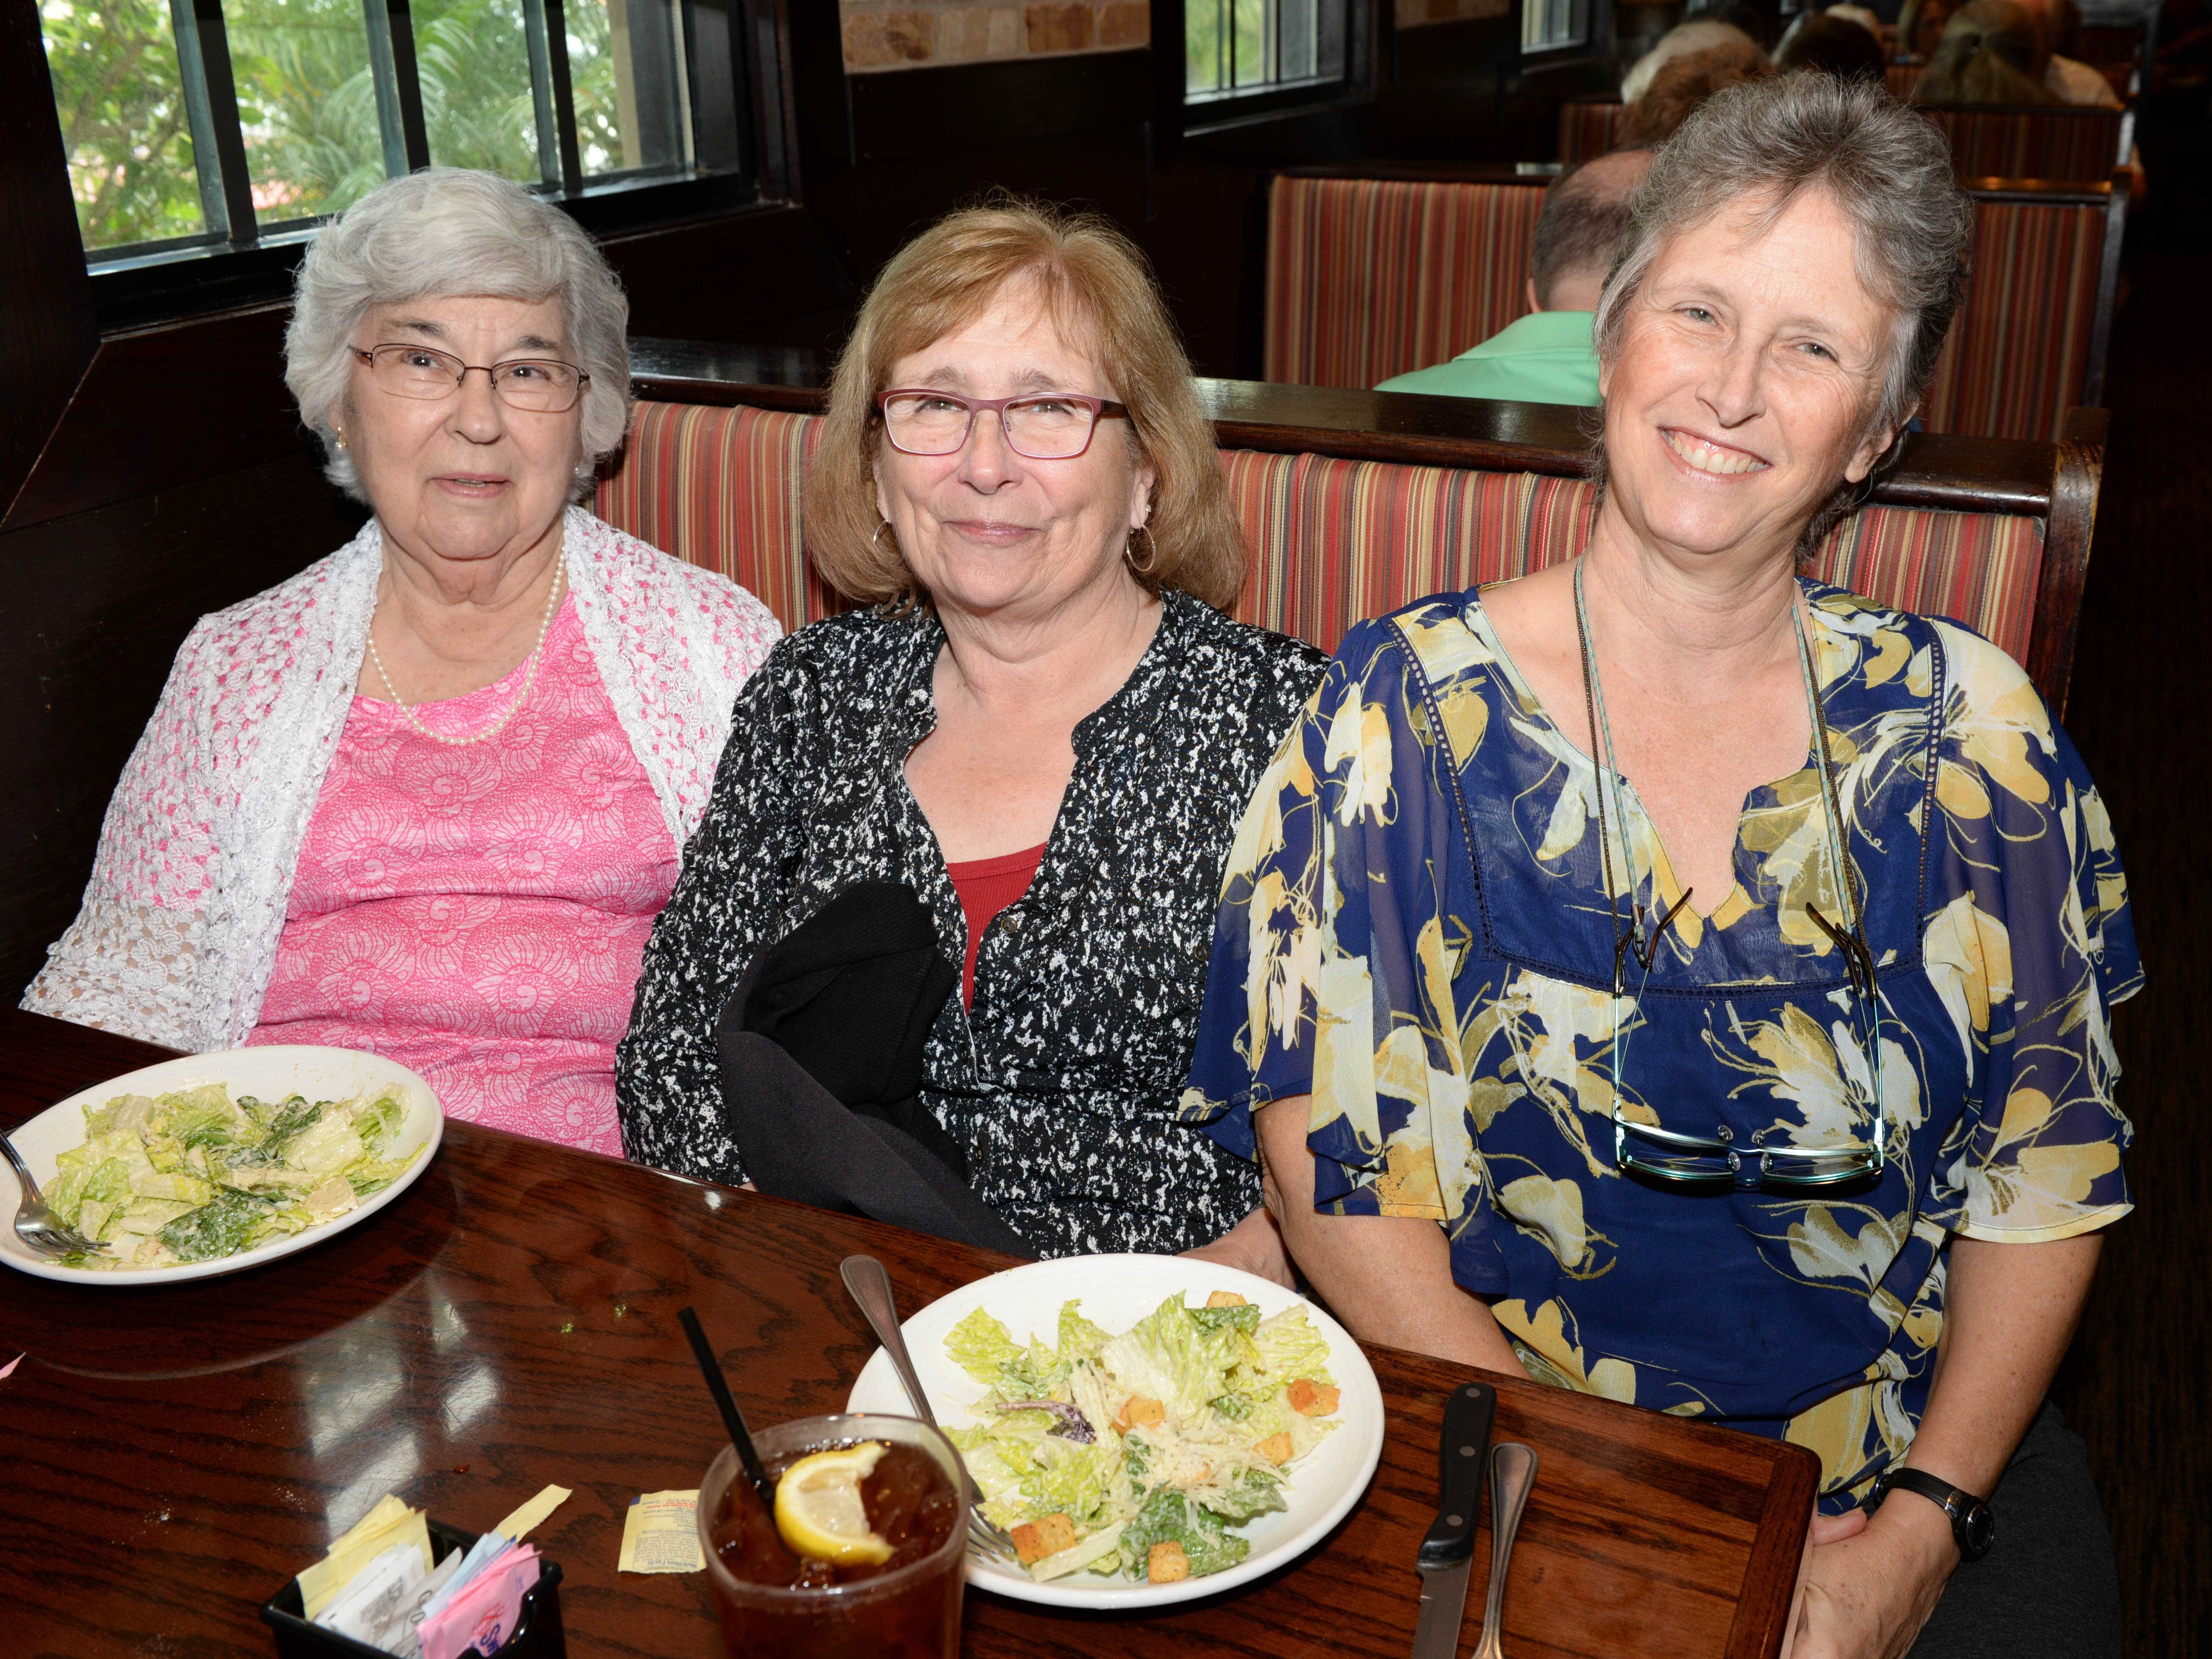 MaryLou Smith, left, Paula Lewis and Jo Moore at Carrabba's Italian Grill in St. Lucie West for the Sarah's Kitchen luncheon.